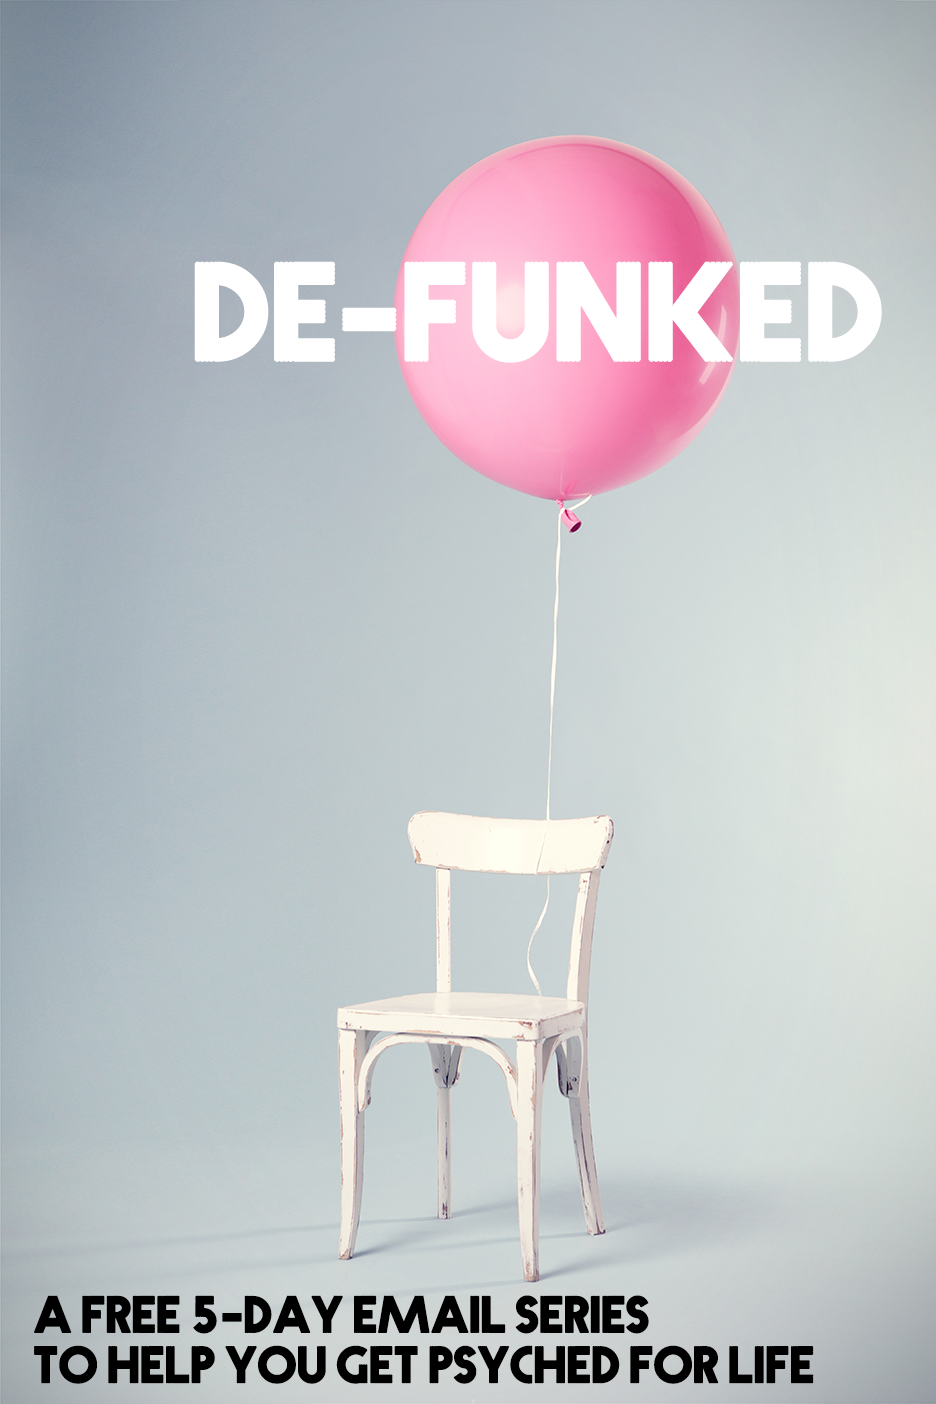 Feeling like you're in a funk? It happens to the best of us! In this FREE 5-day email series, I'm giving you the tools to get #DEFUNKED and psyched for life. Click through to sign up!